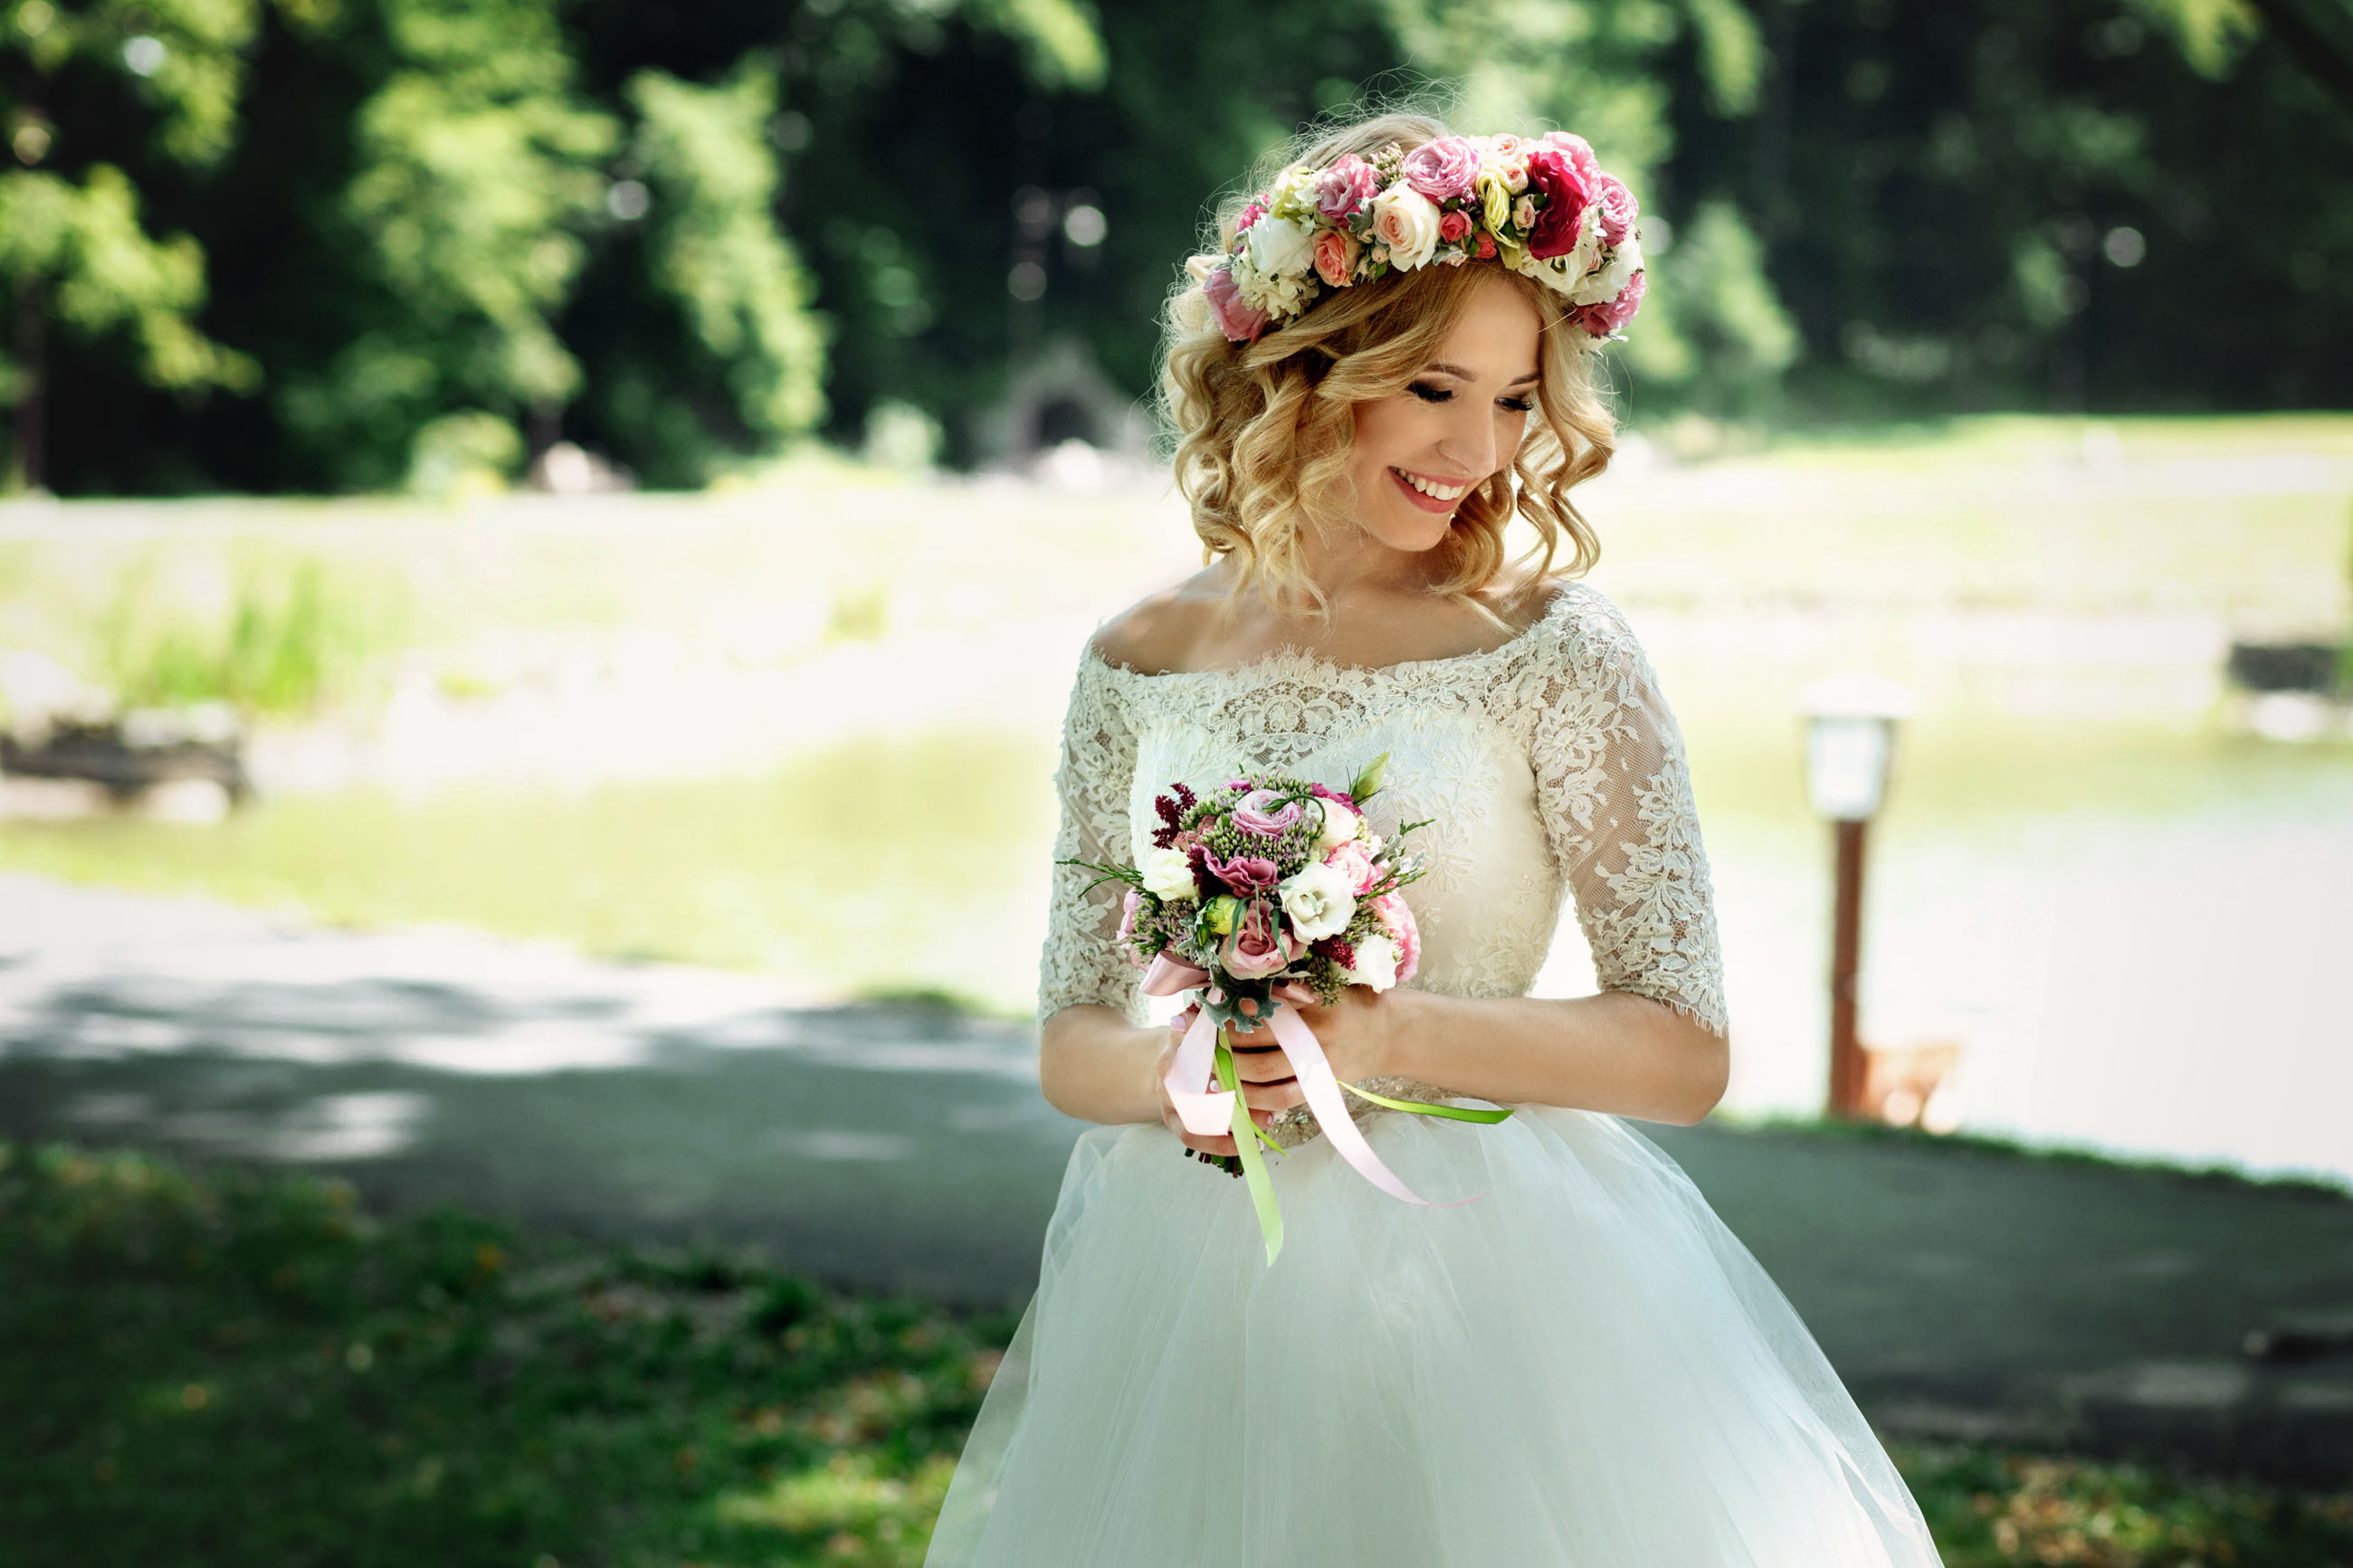 Beautiful blonde happy bride in elegant white dress in a wreath with bouquet outdoors